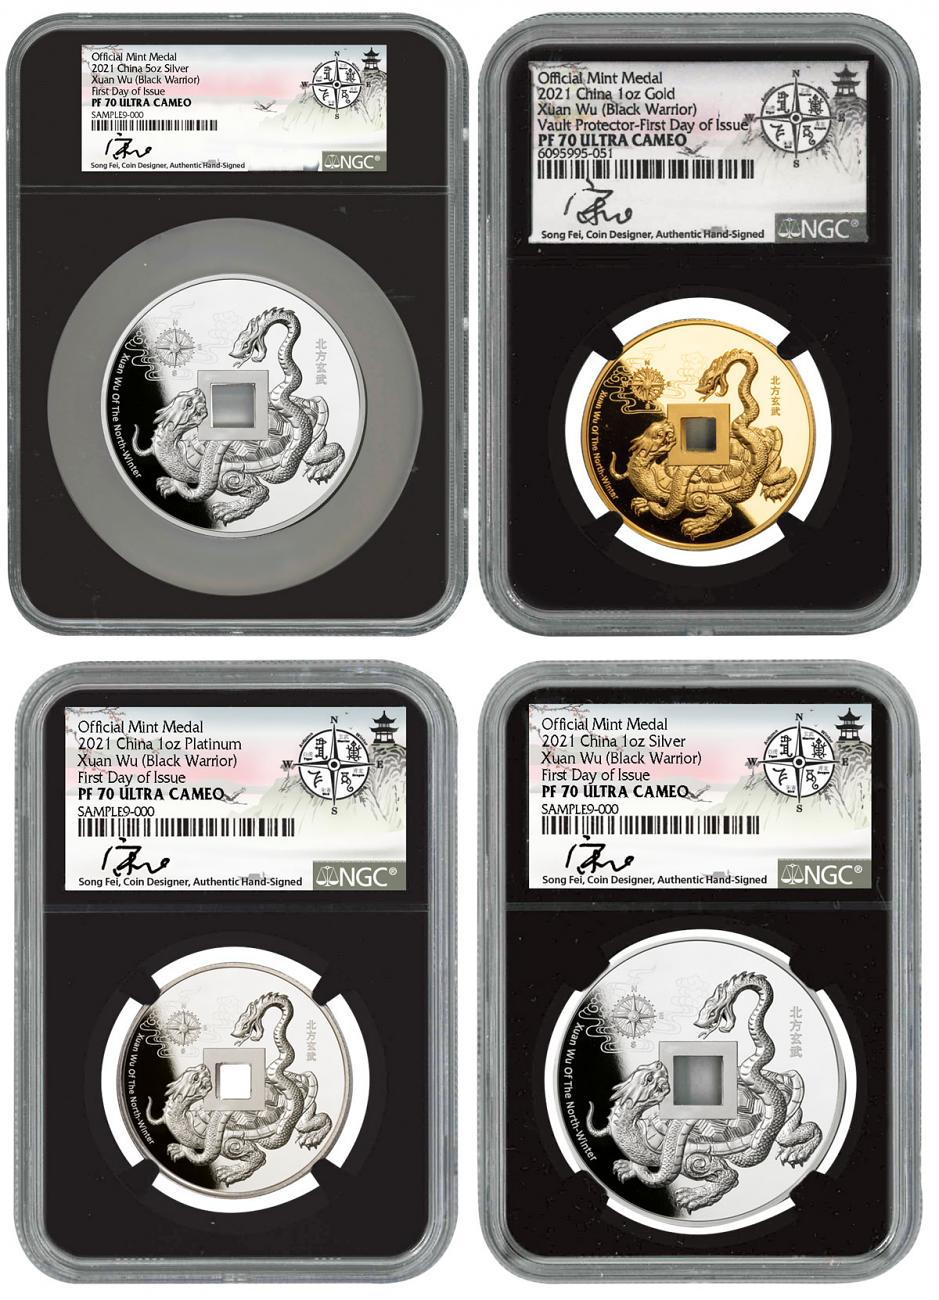 4pc Complete Set - 2021 1oz Gold/Slv/Plat + 5oz Silver Black Warrior Vault Protector Scarce and Unique Coin Division NGC PF70 UC FDI Song Fei Signature Label